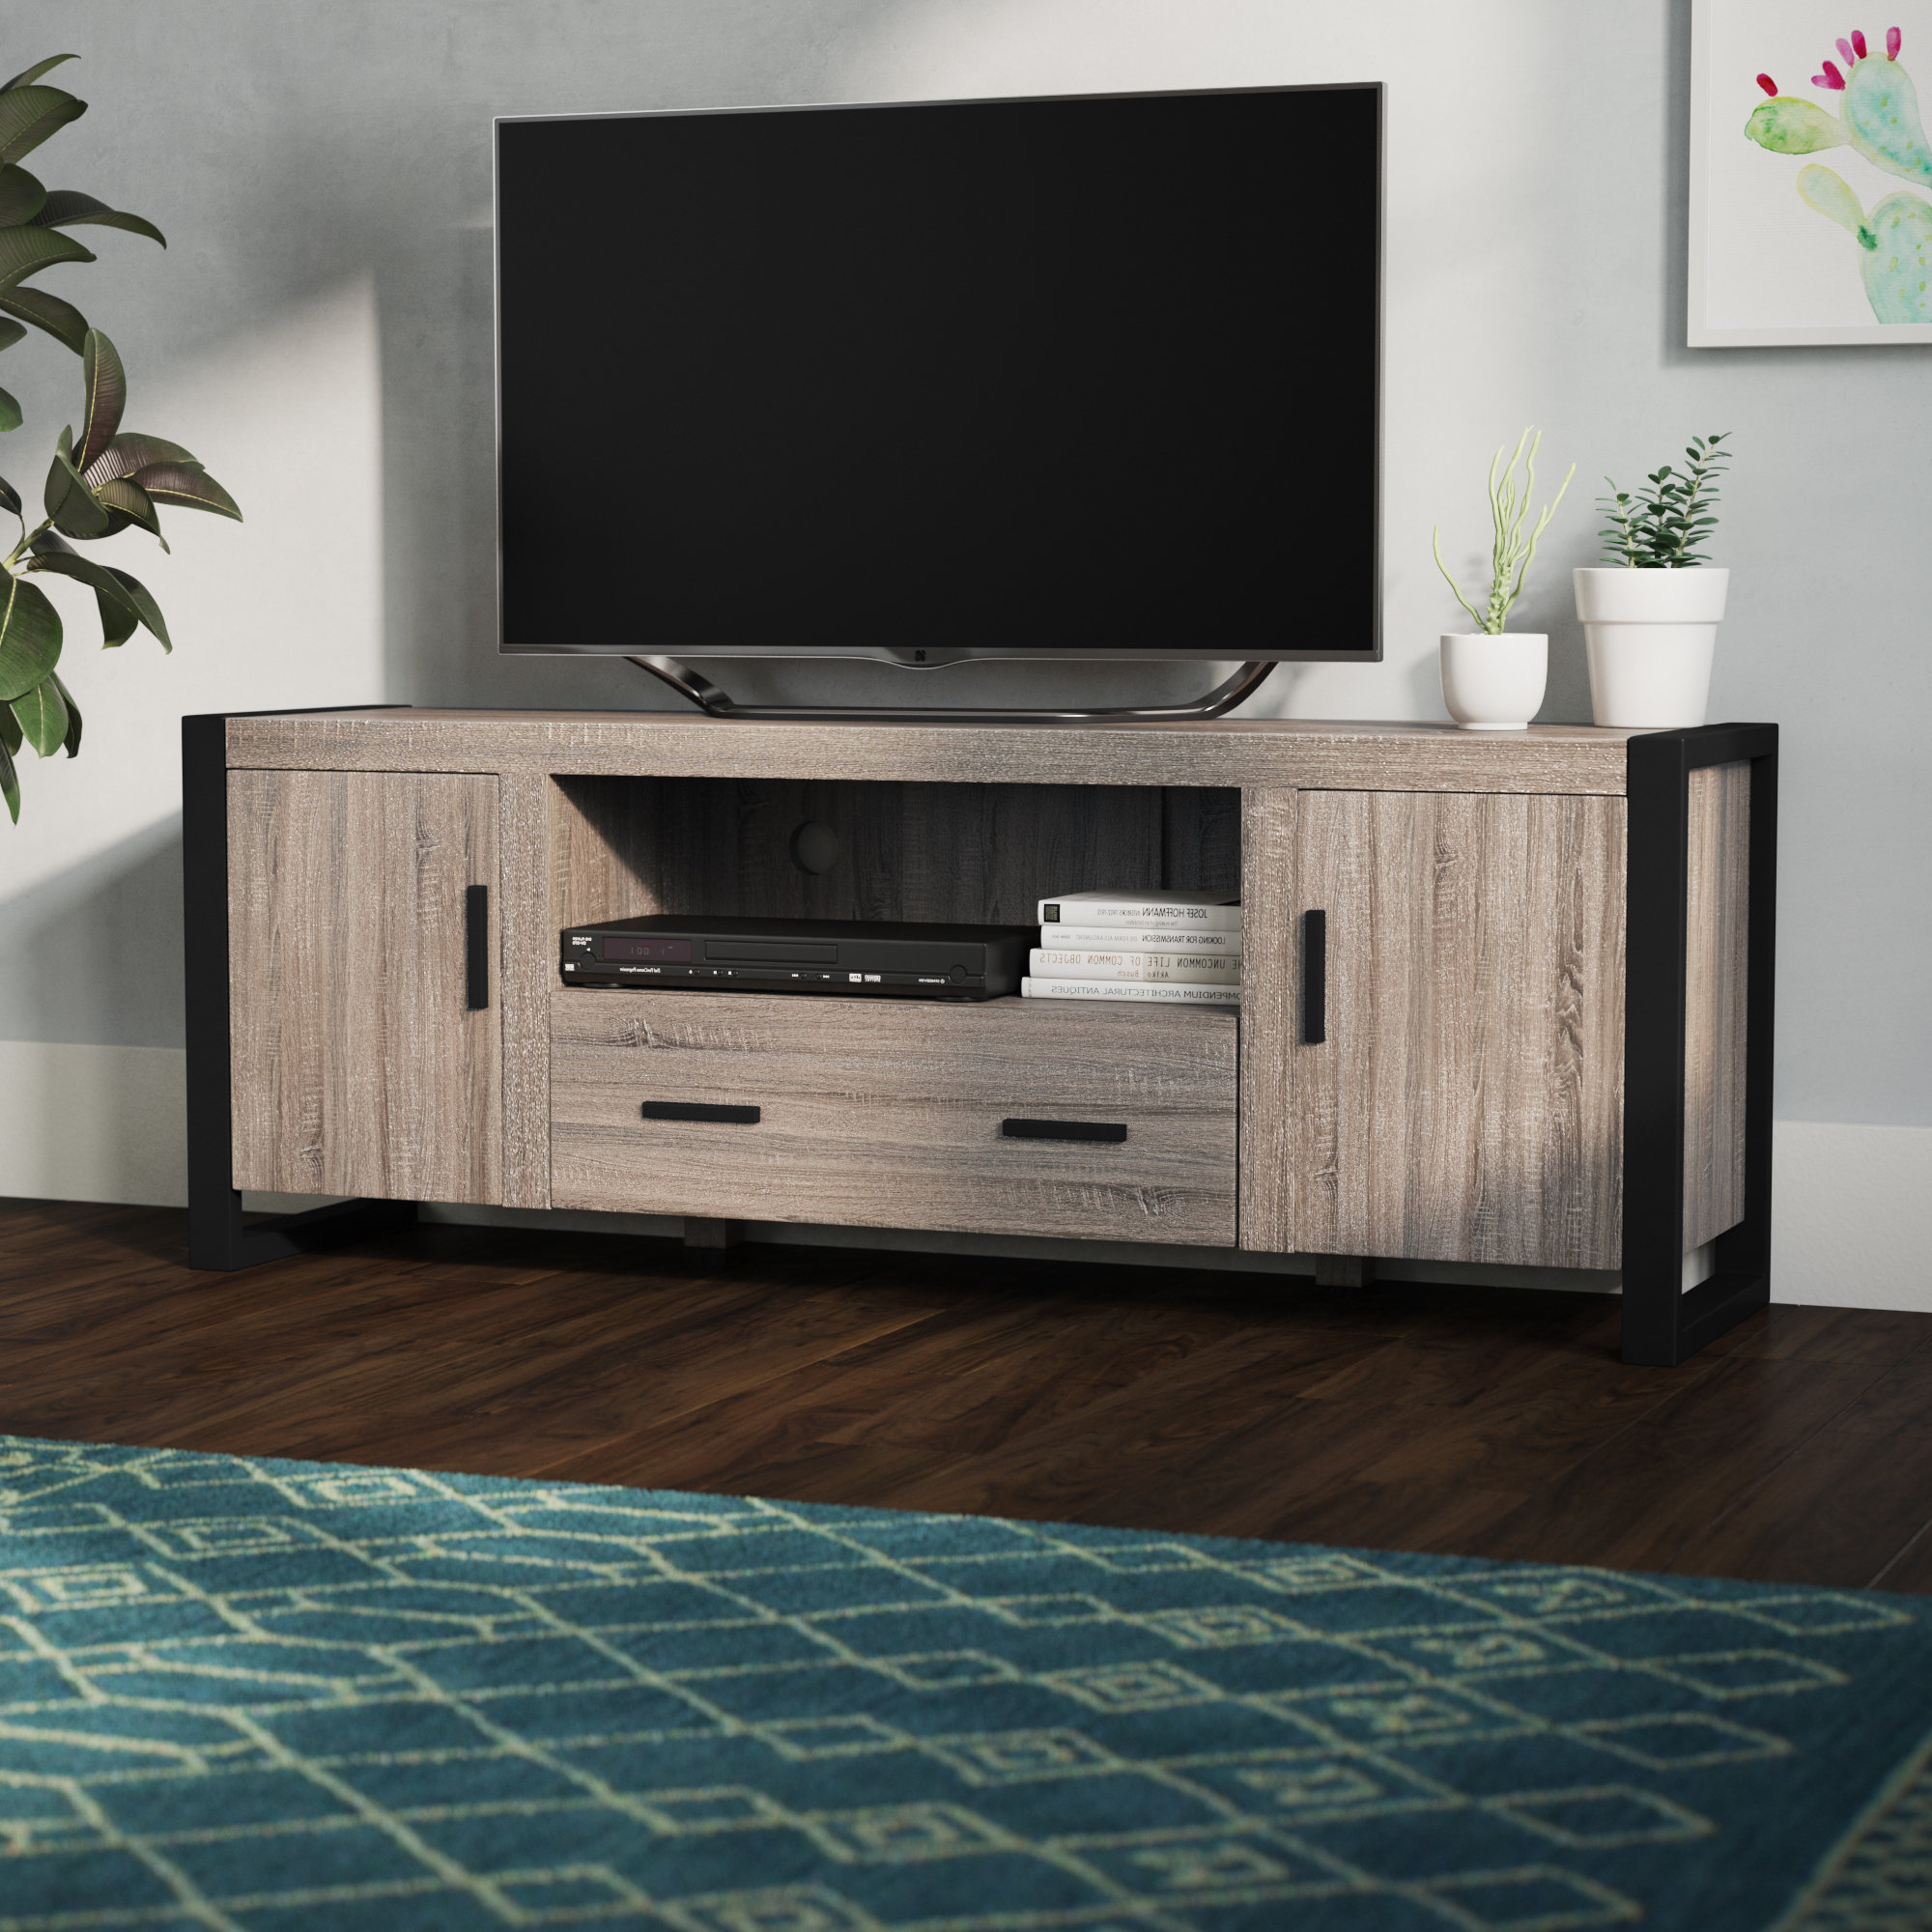 Rustic Tv Stands For Sale Within Best And Newest Rustic Tv Stands & Entertainment Centers You'll Love (Gallery 7 of 20)